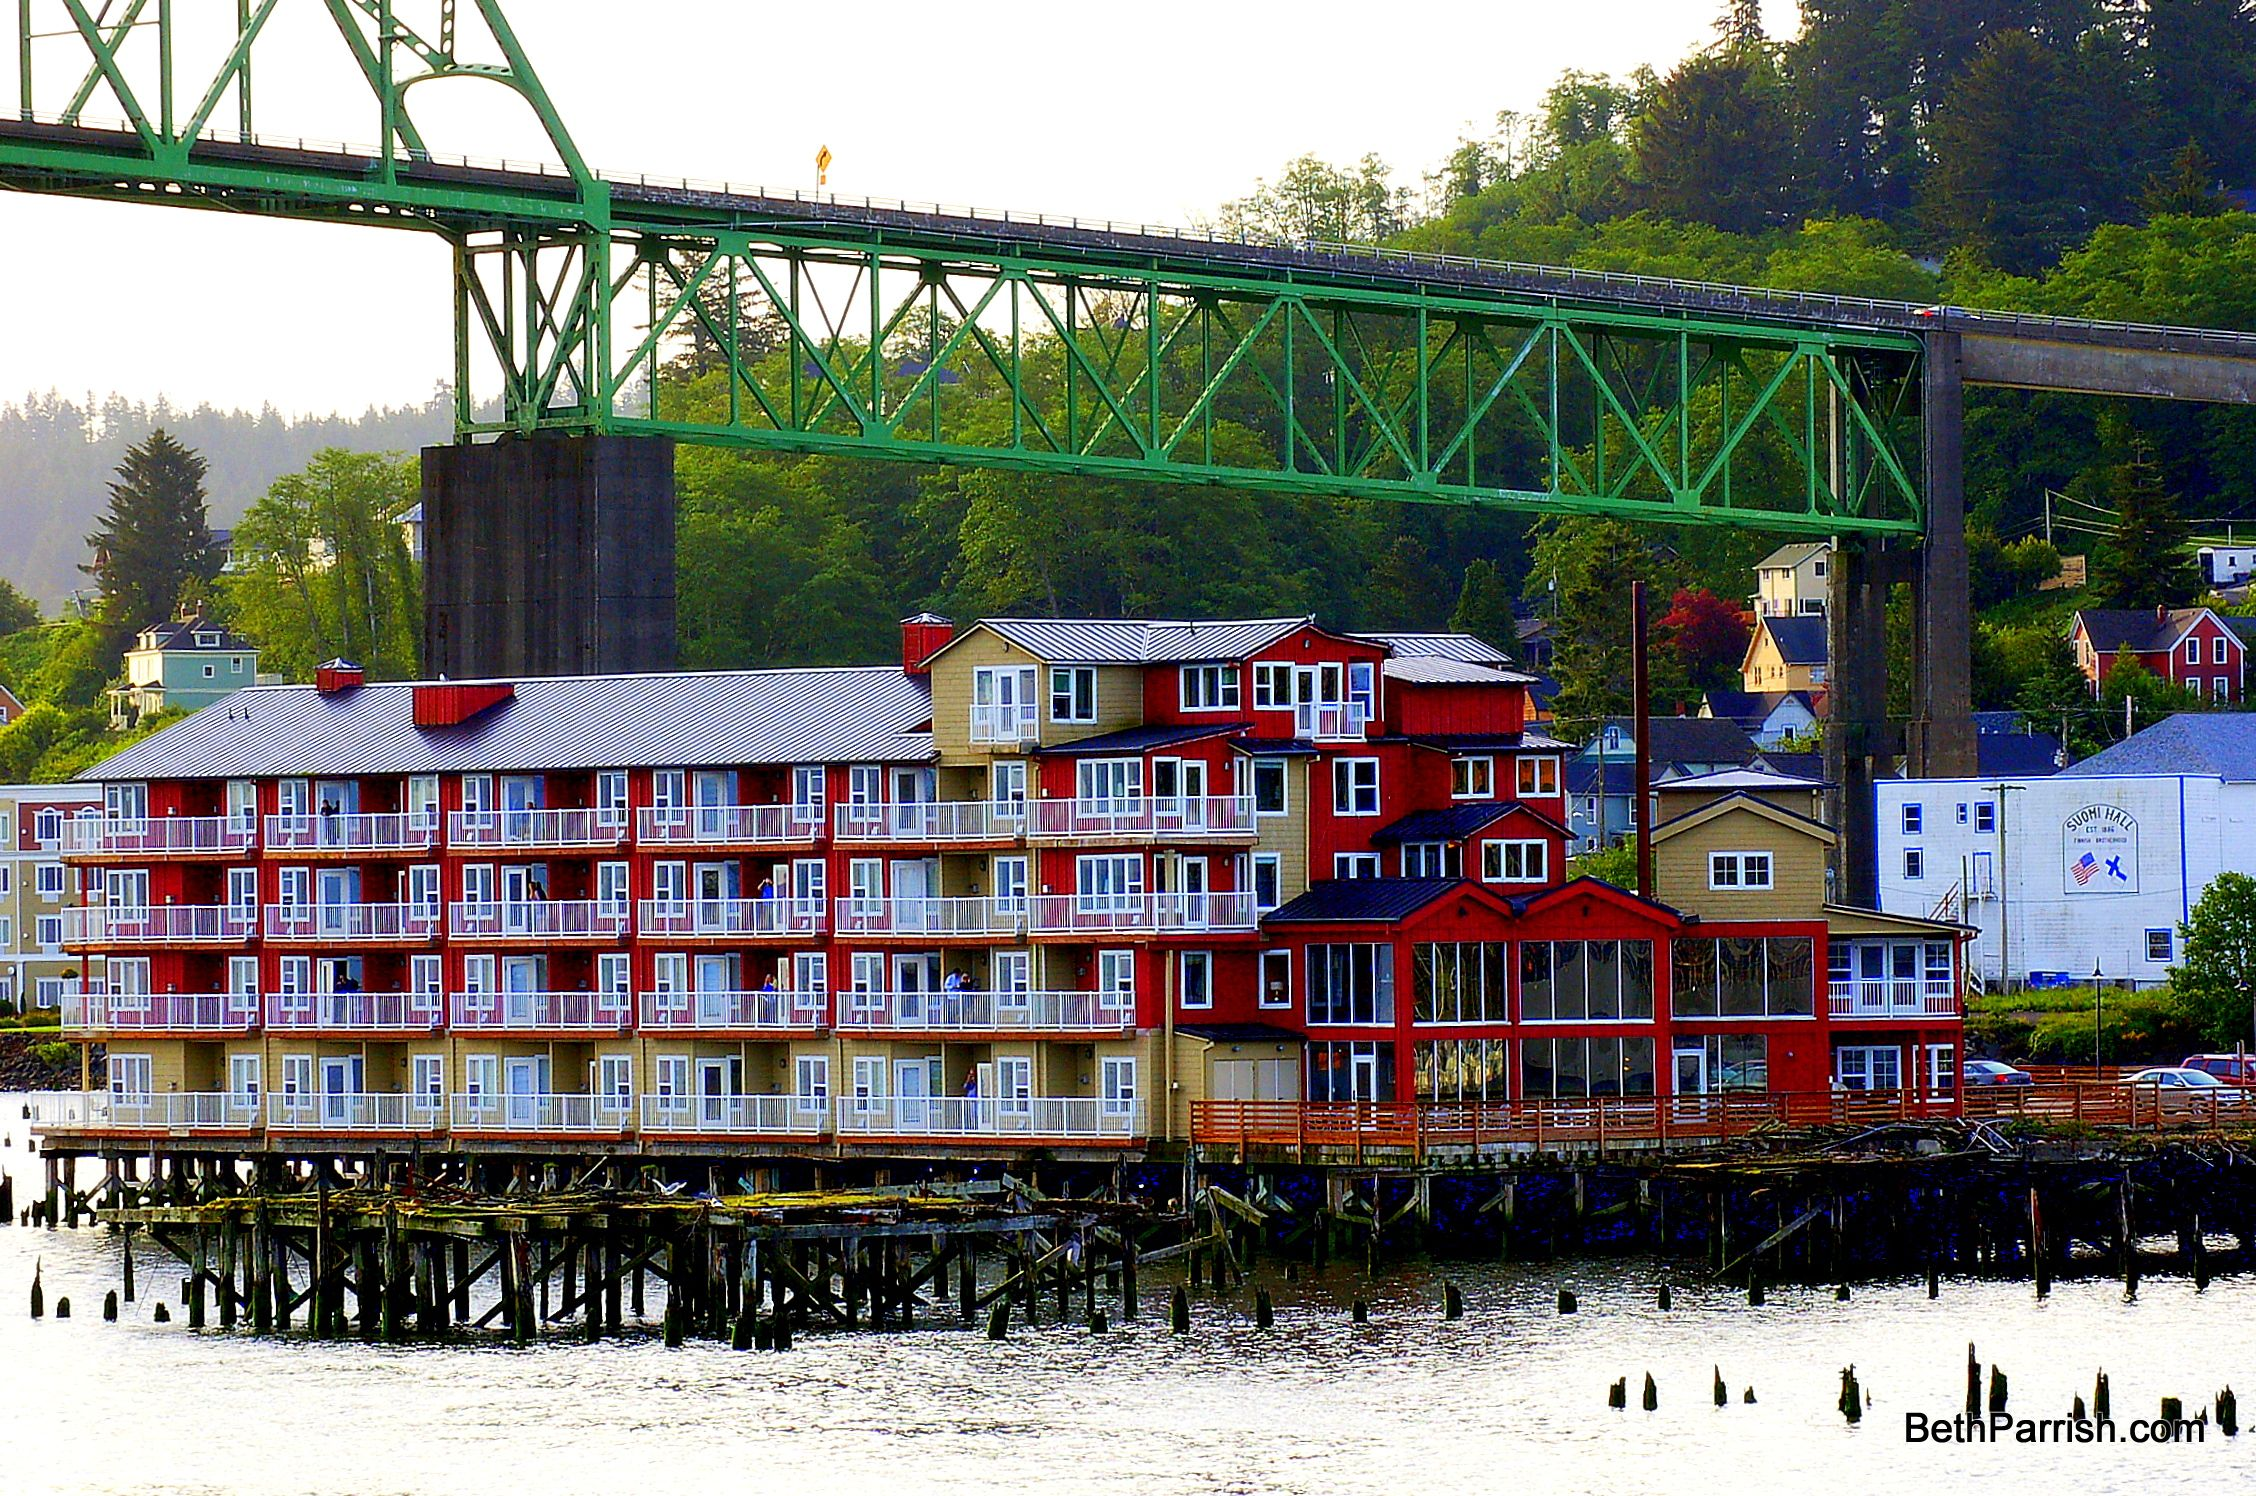 cannery pier hotel in astoria oregon built on pilings on. Black Bedroom Furniture Sets. Home Design Ideas